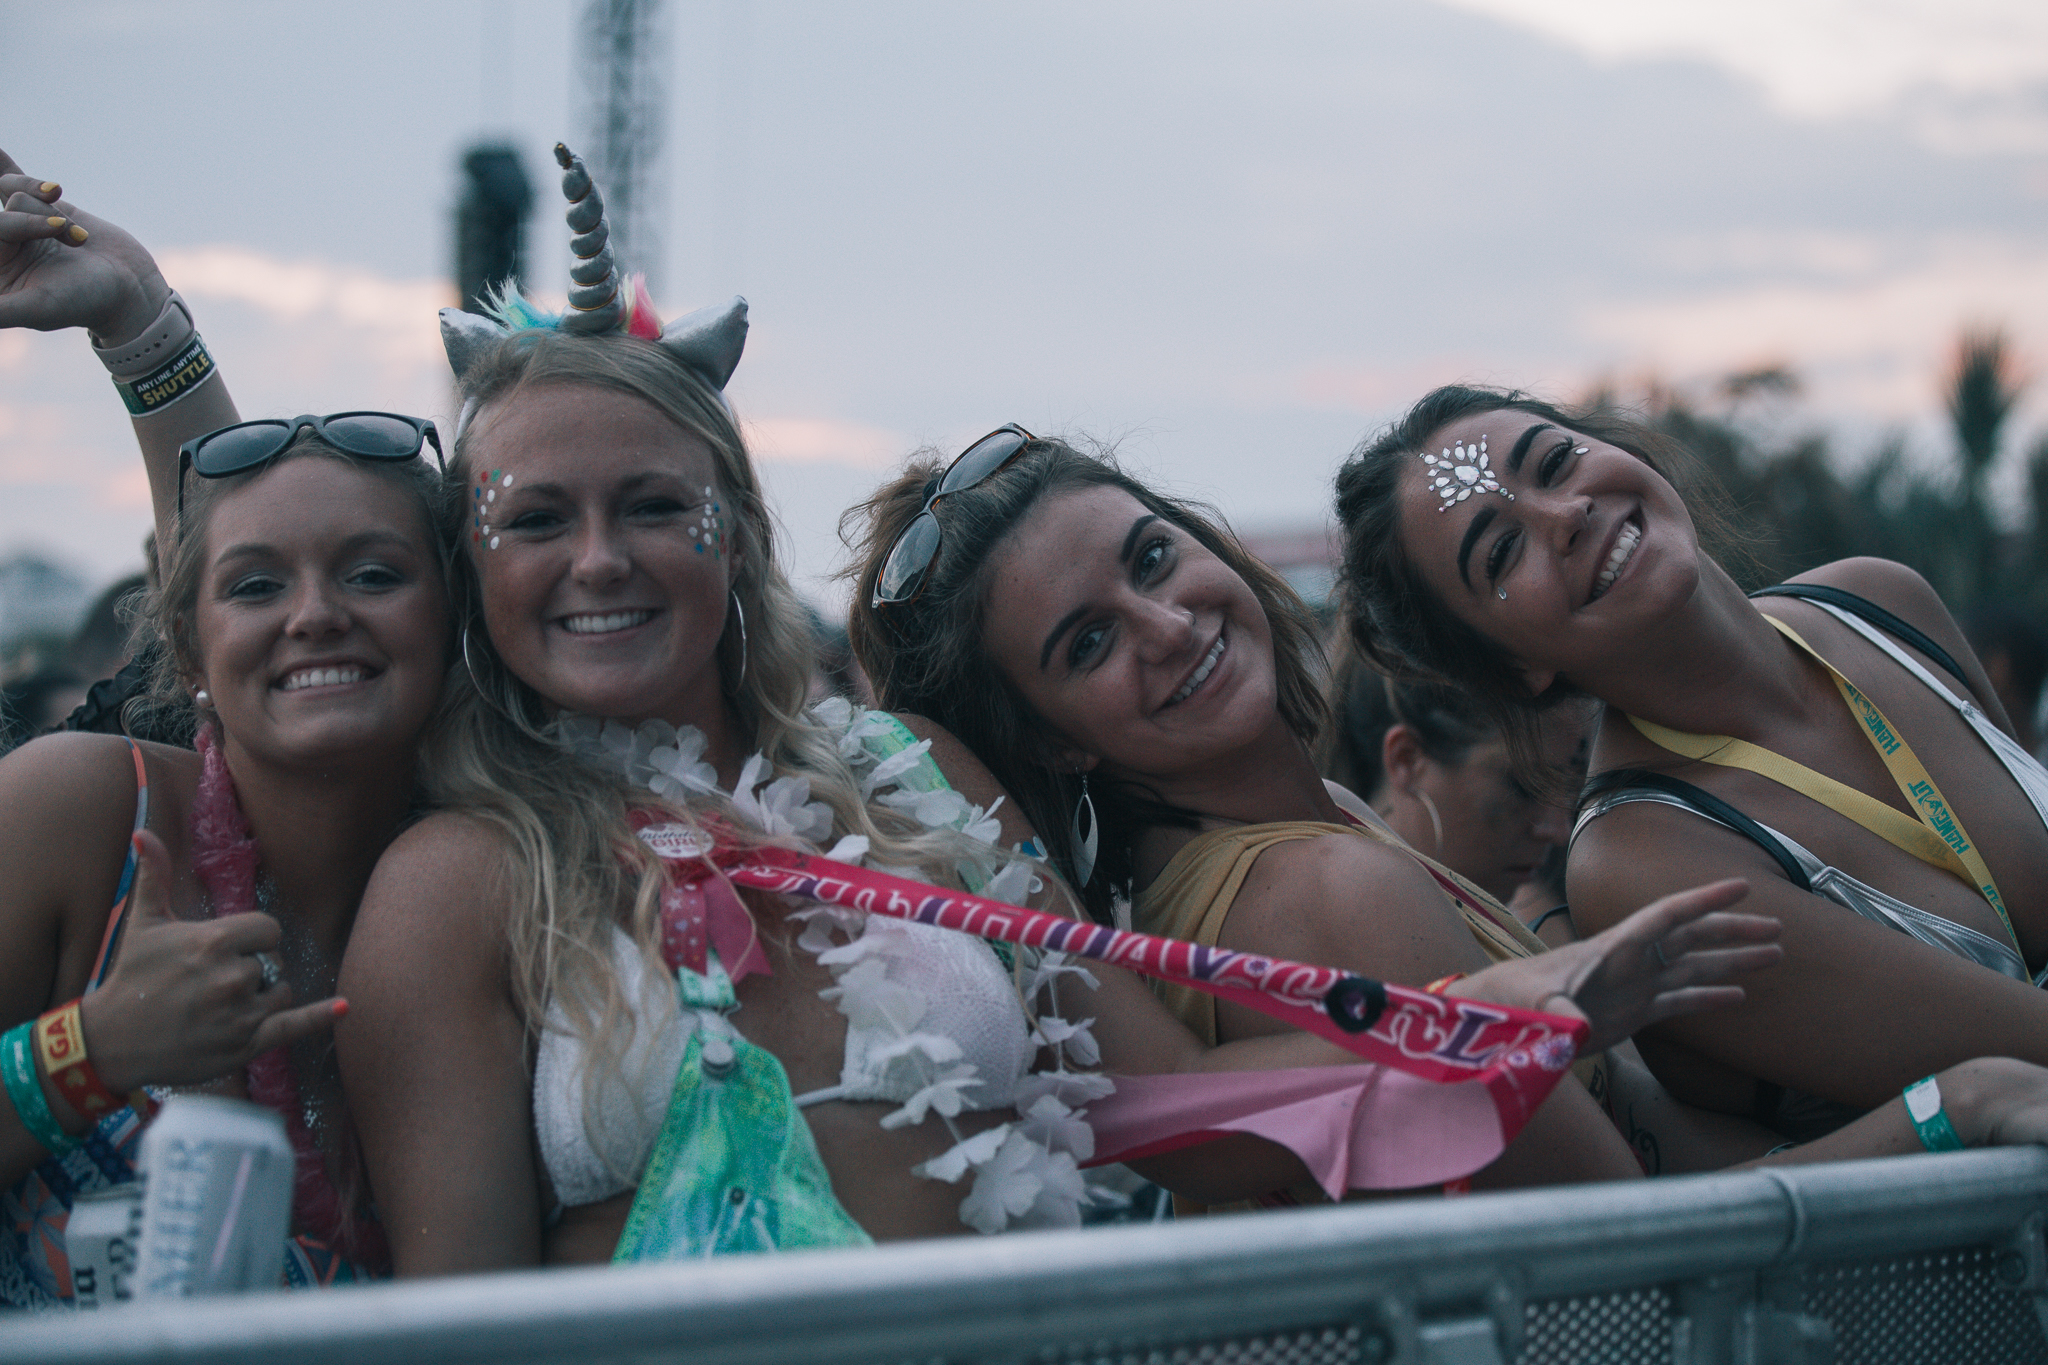 Laura Ord Photography | Austin, TX Concert Photography | Hangout Music Fest in Gulf Shores, AL